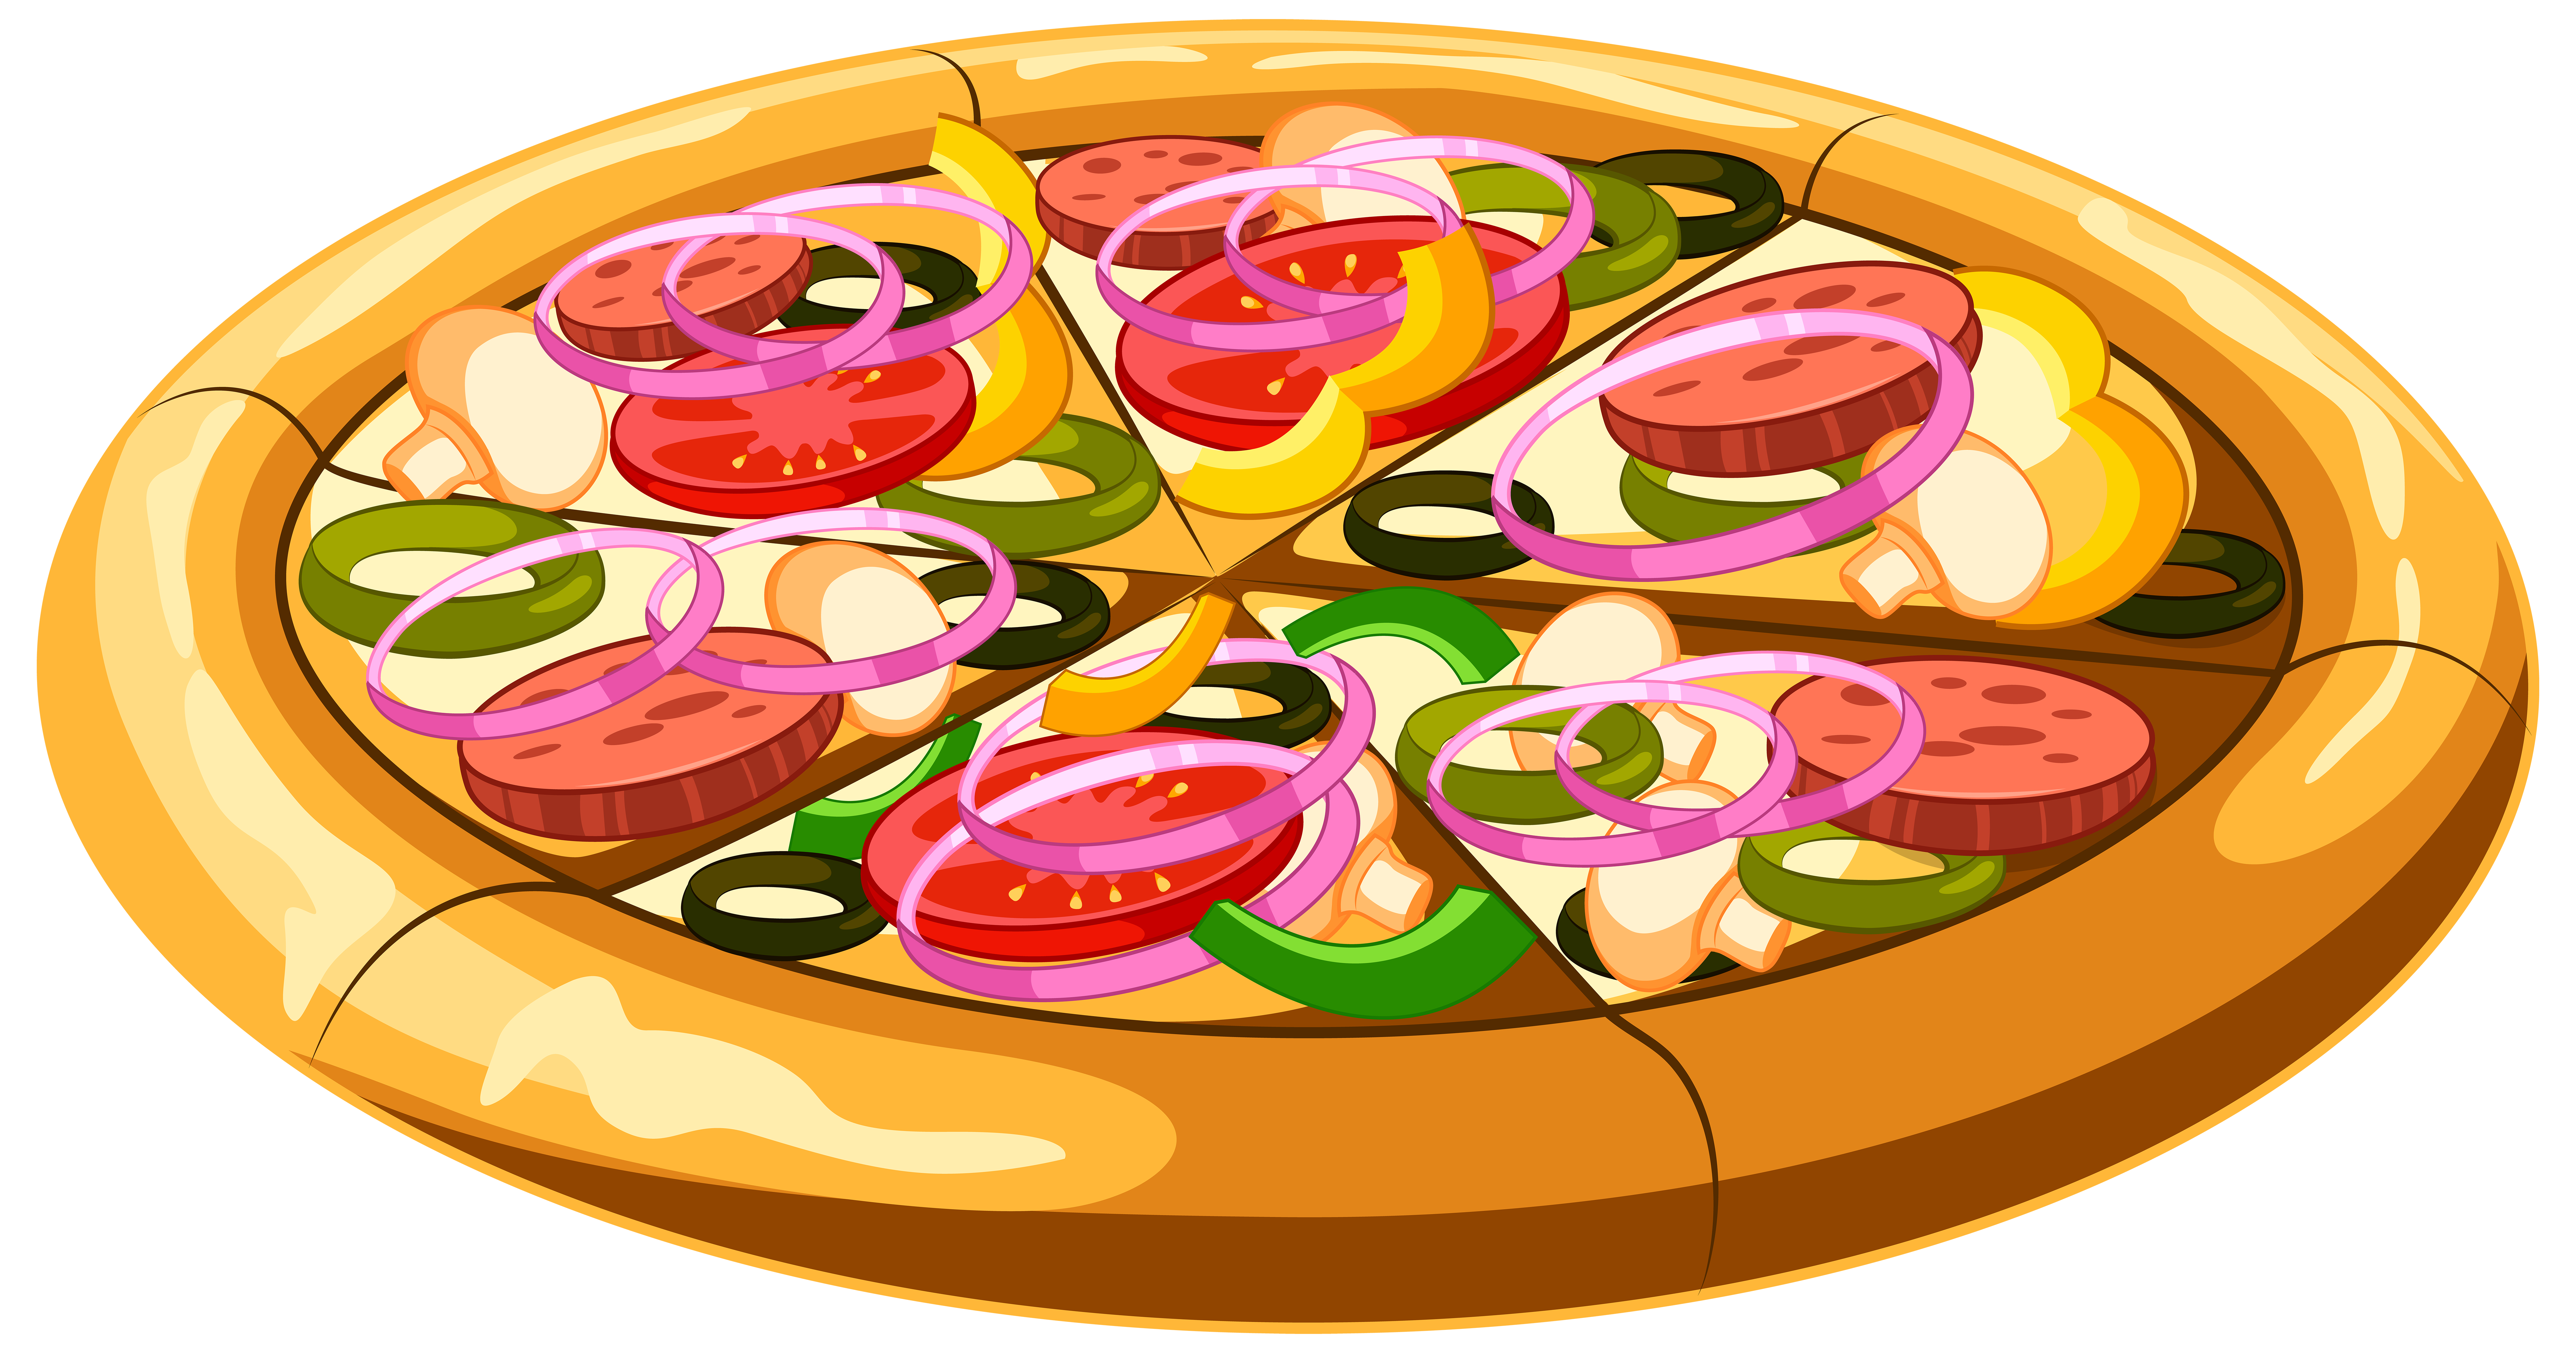 Png clip art image. Pizza clipart halloween